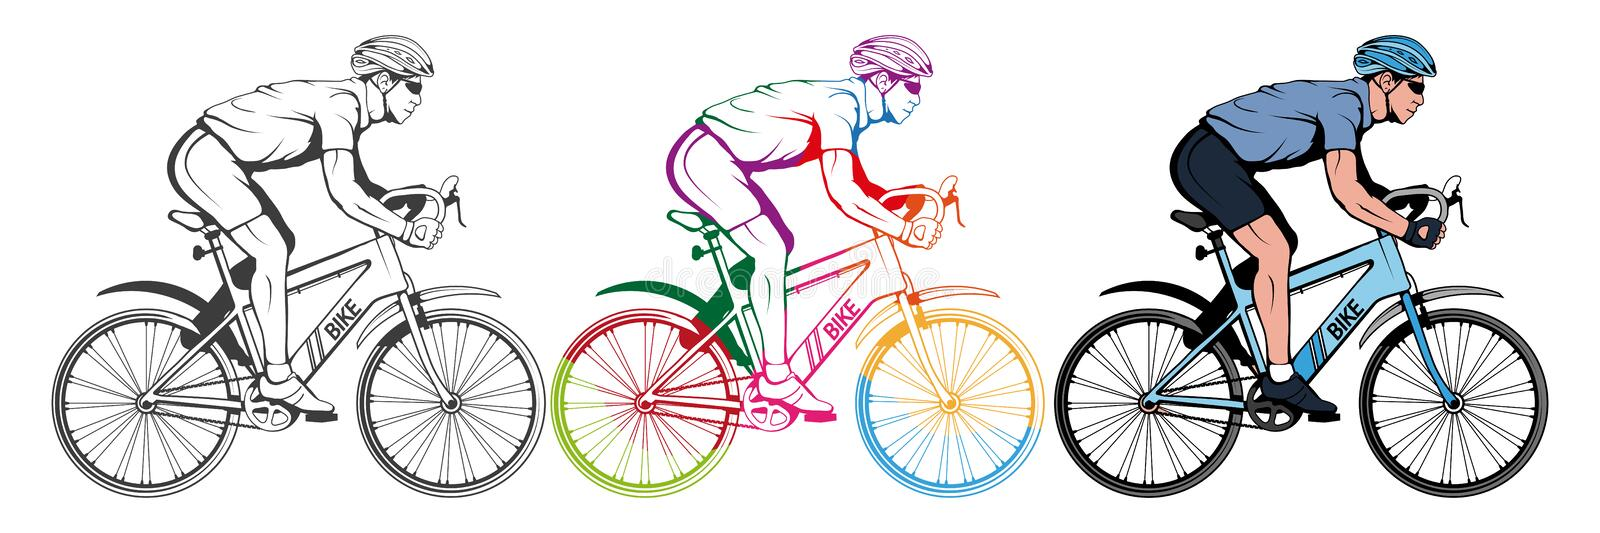 Set of various cycling elements. Cyclist on a bicycle. Sports bike. Bicycle helmet. Man riding a bike. Vector graphics to design royalty free illustration